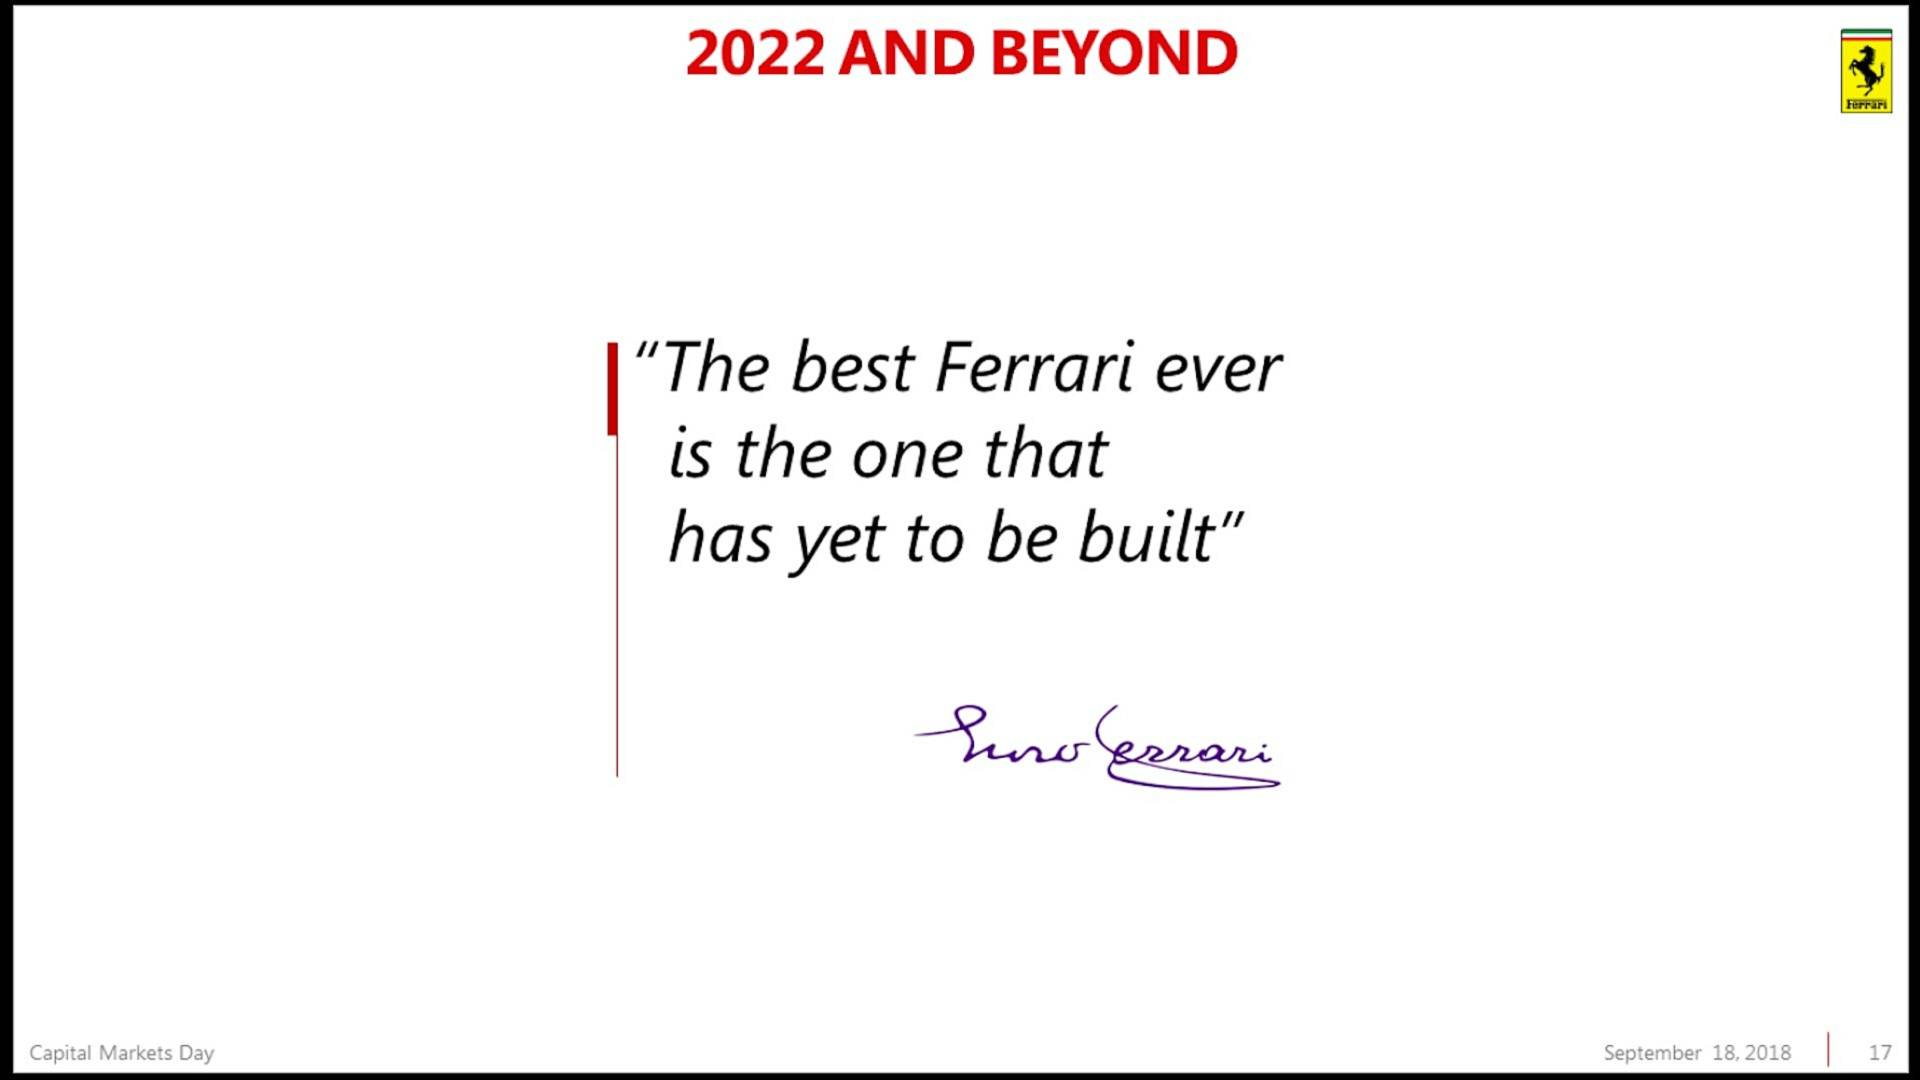 Piano Industriale Ferrari 2018-2022 (15)